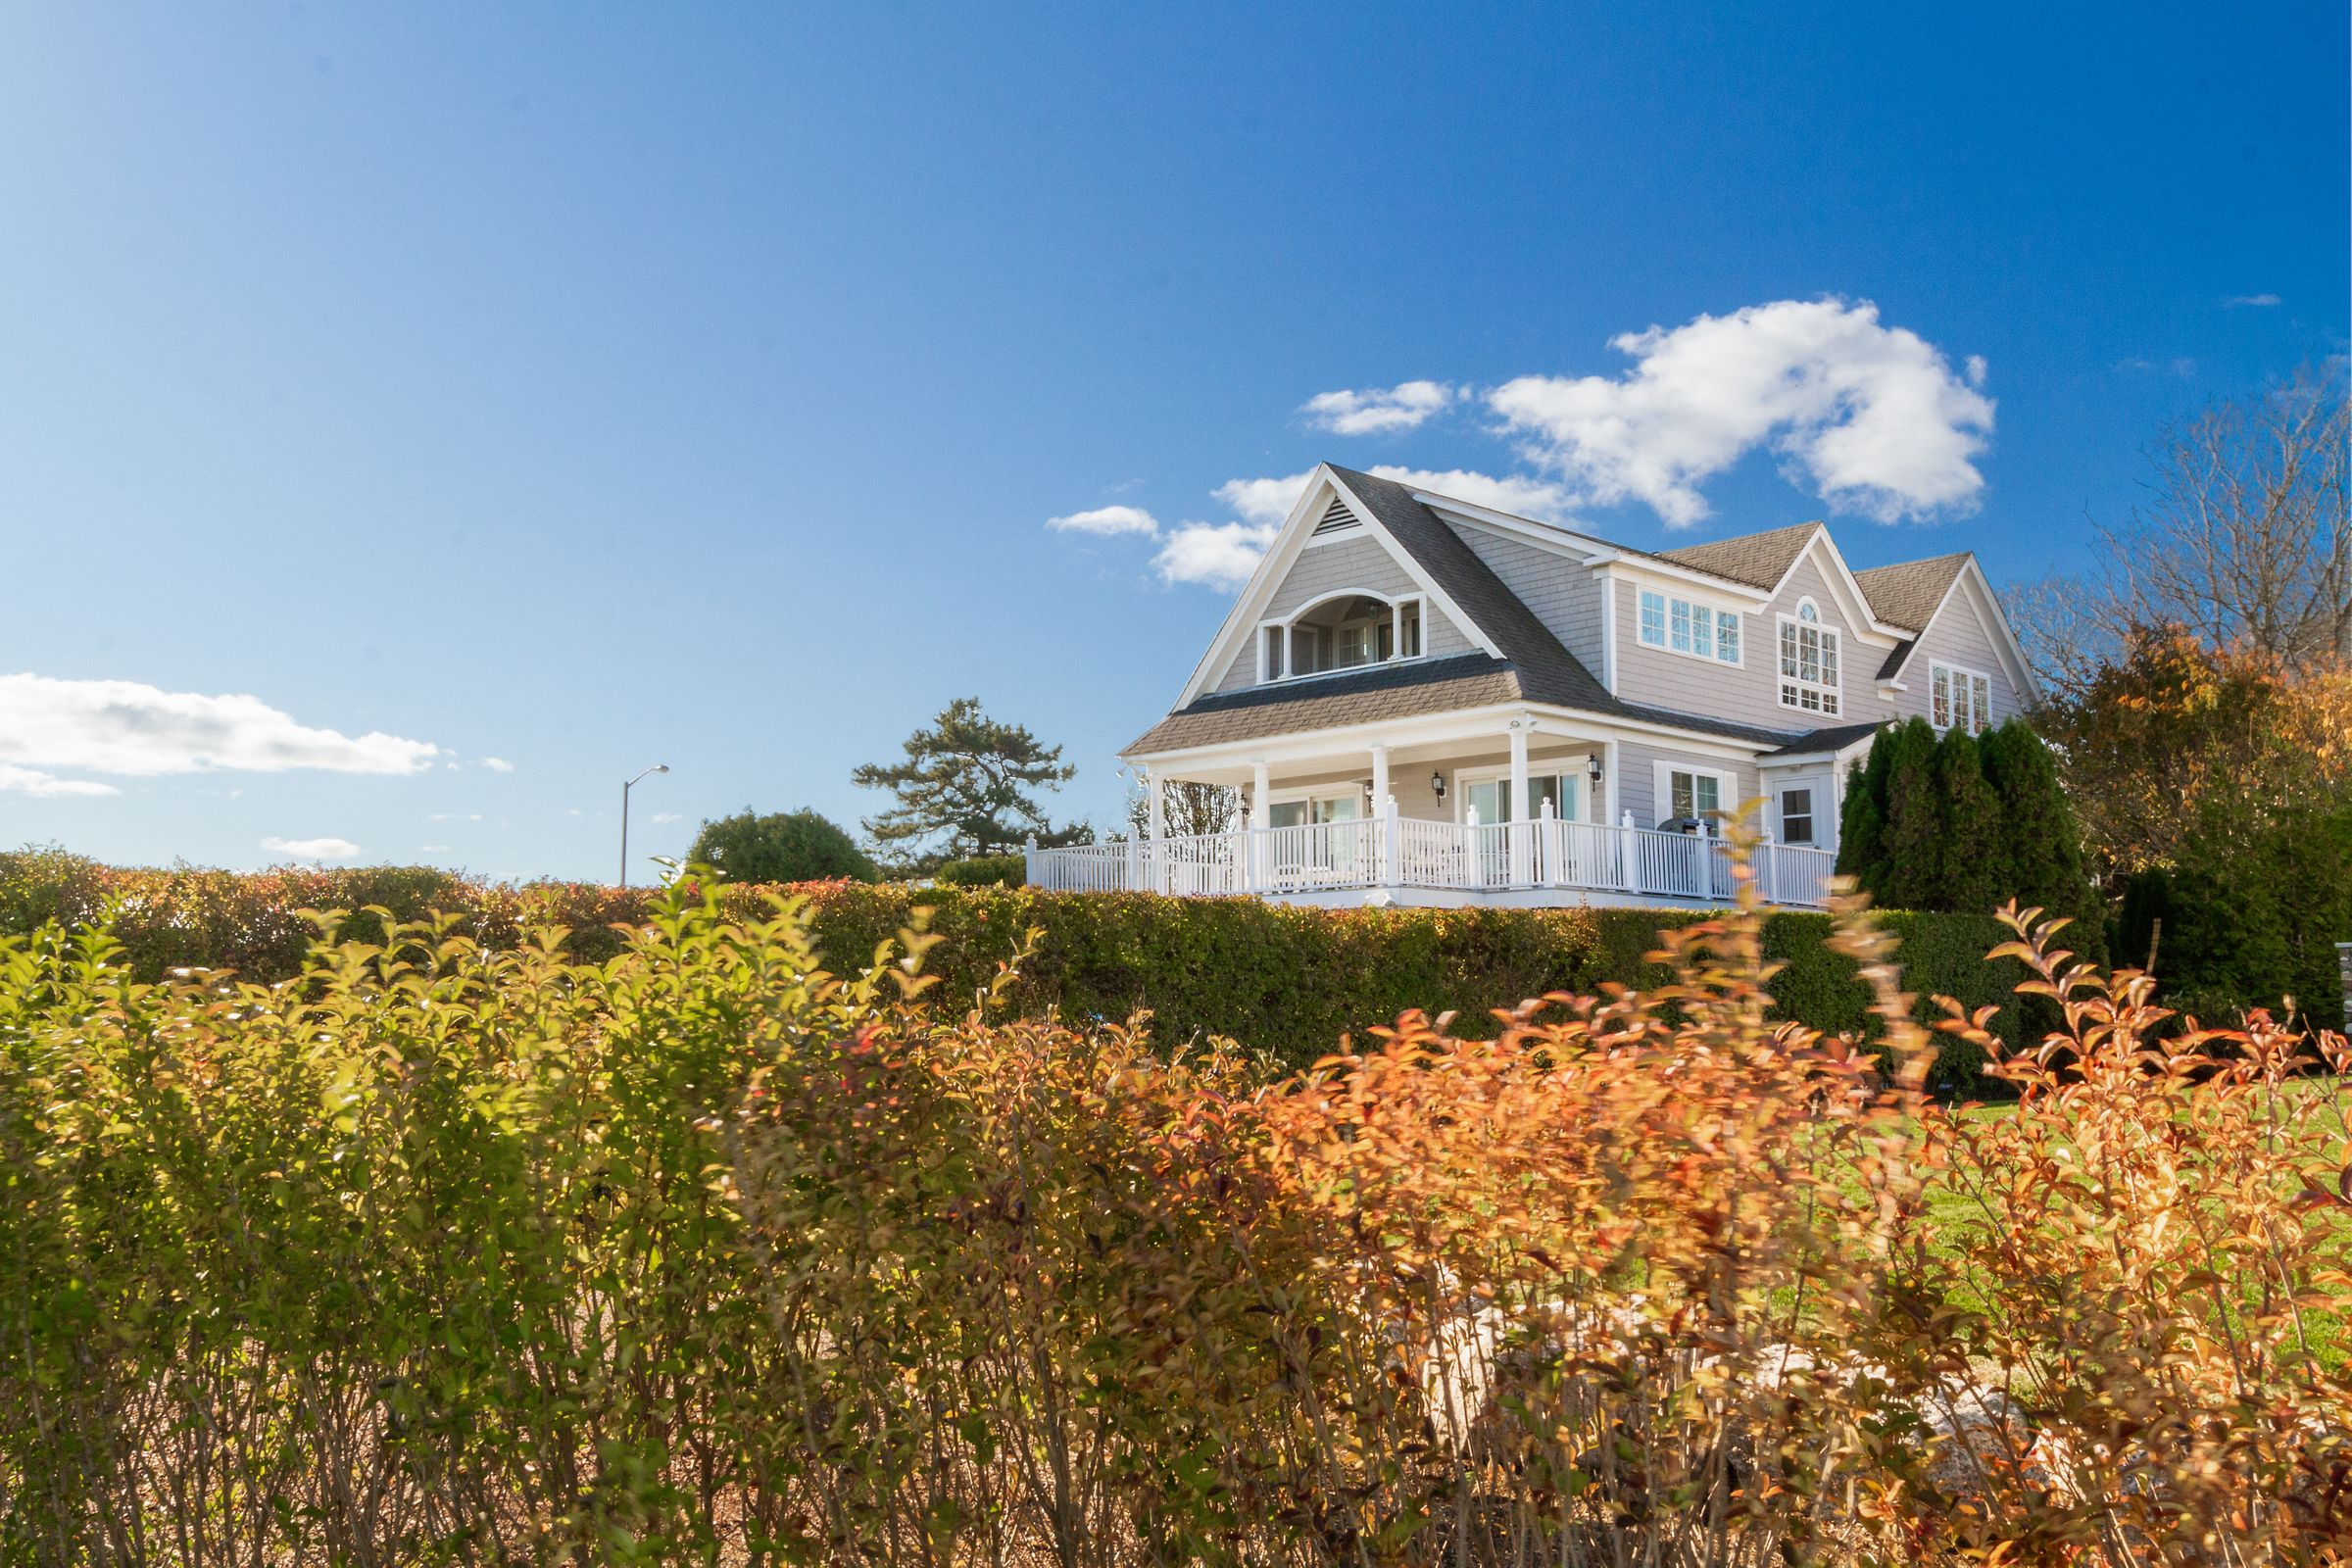 OCEAN VIEW HOME OVERLOOKING EASTON'S BEACH SELLS FOR $3,337,500 WITH LILA DELMAN COMPASS REPRESENTING THE SELLER & FACILITATING FOR THE BUYER*